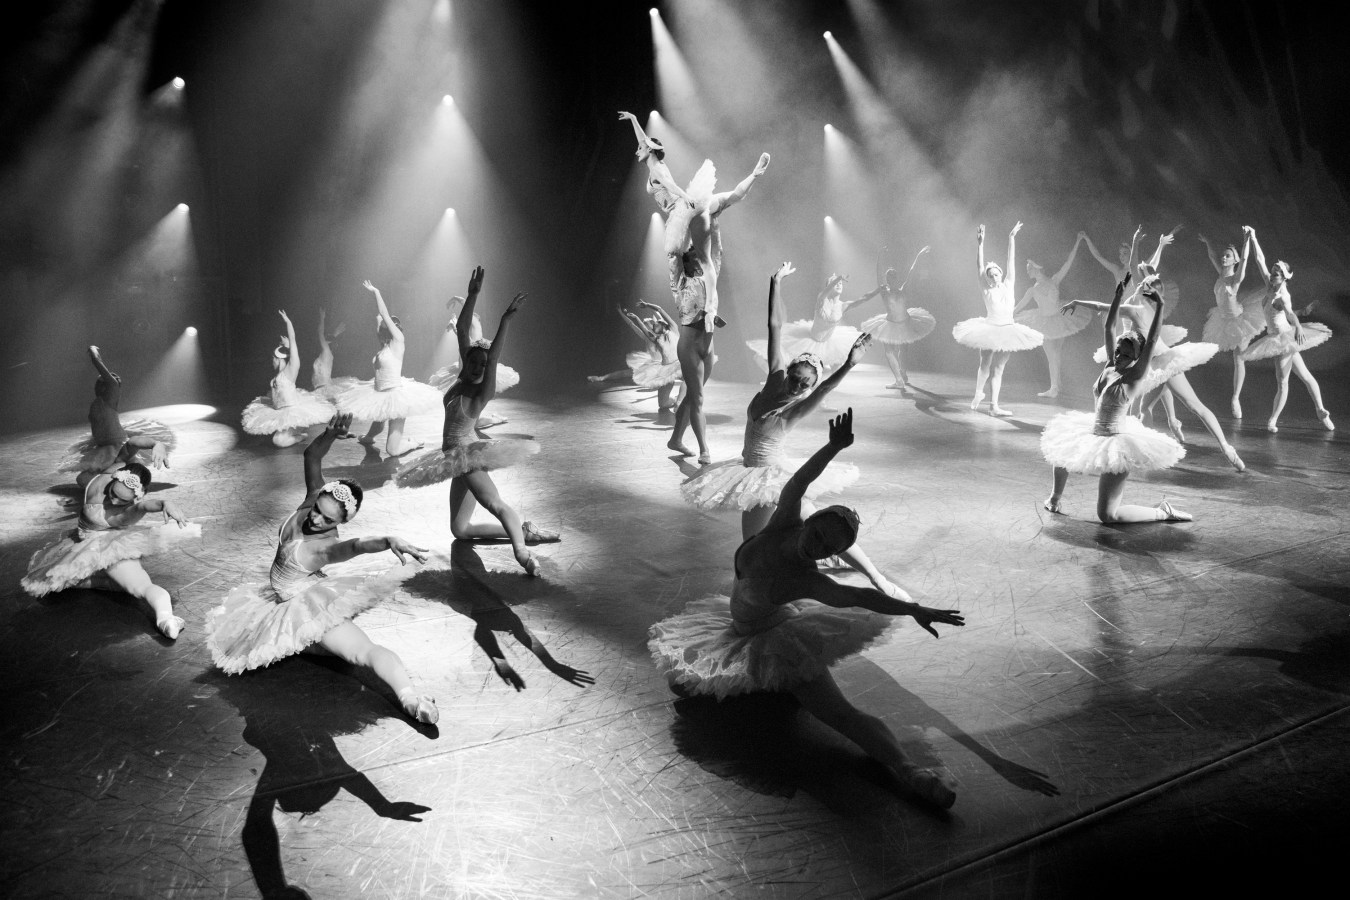 "The 2015 version of Swan Lake at the Opera House Main Stage was a total rework by artistic director Nikolaj Hübbe and deputy director Silja Schandorff. They used all dancers in the corpse, and even had to hire dancers from outside Denmark to fill the huge stage. The show was praised for its cinematic interpretation ""in a futuristic setting that bring to mind not only classic fairy tales but also sci-fi, Star Wars and even rock shows."""